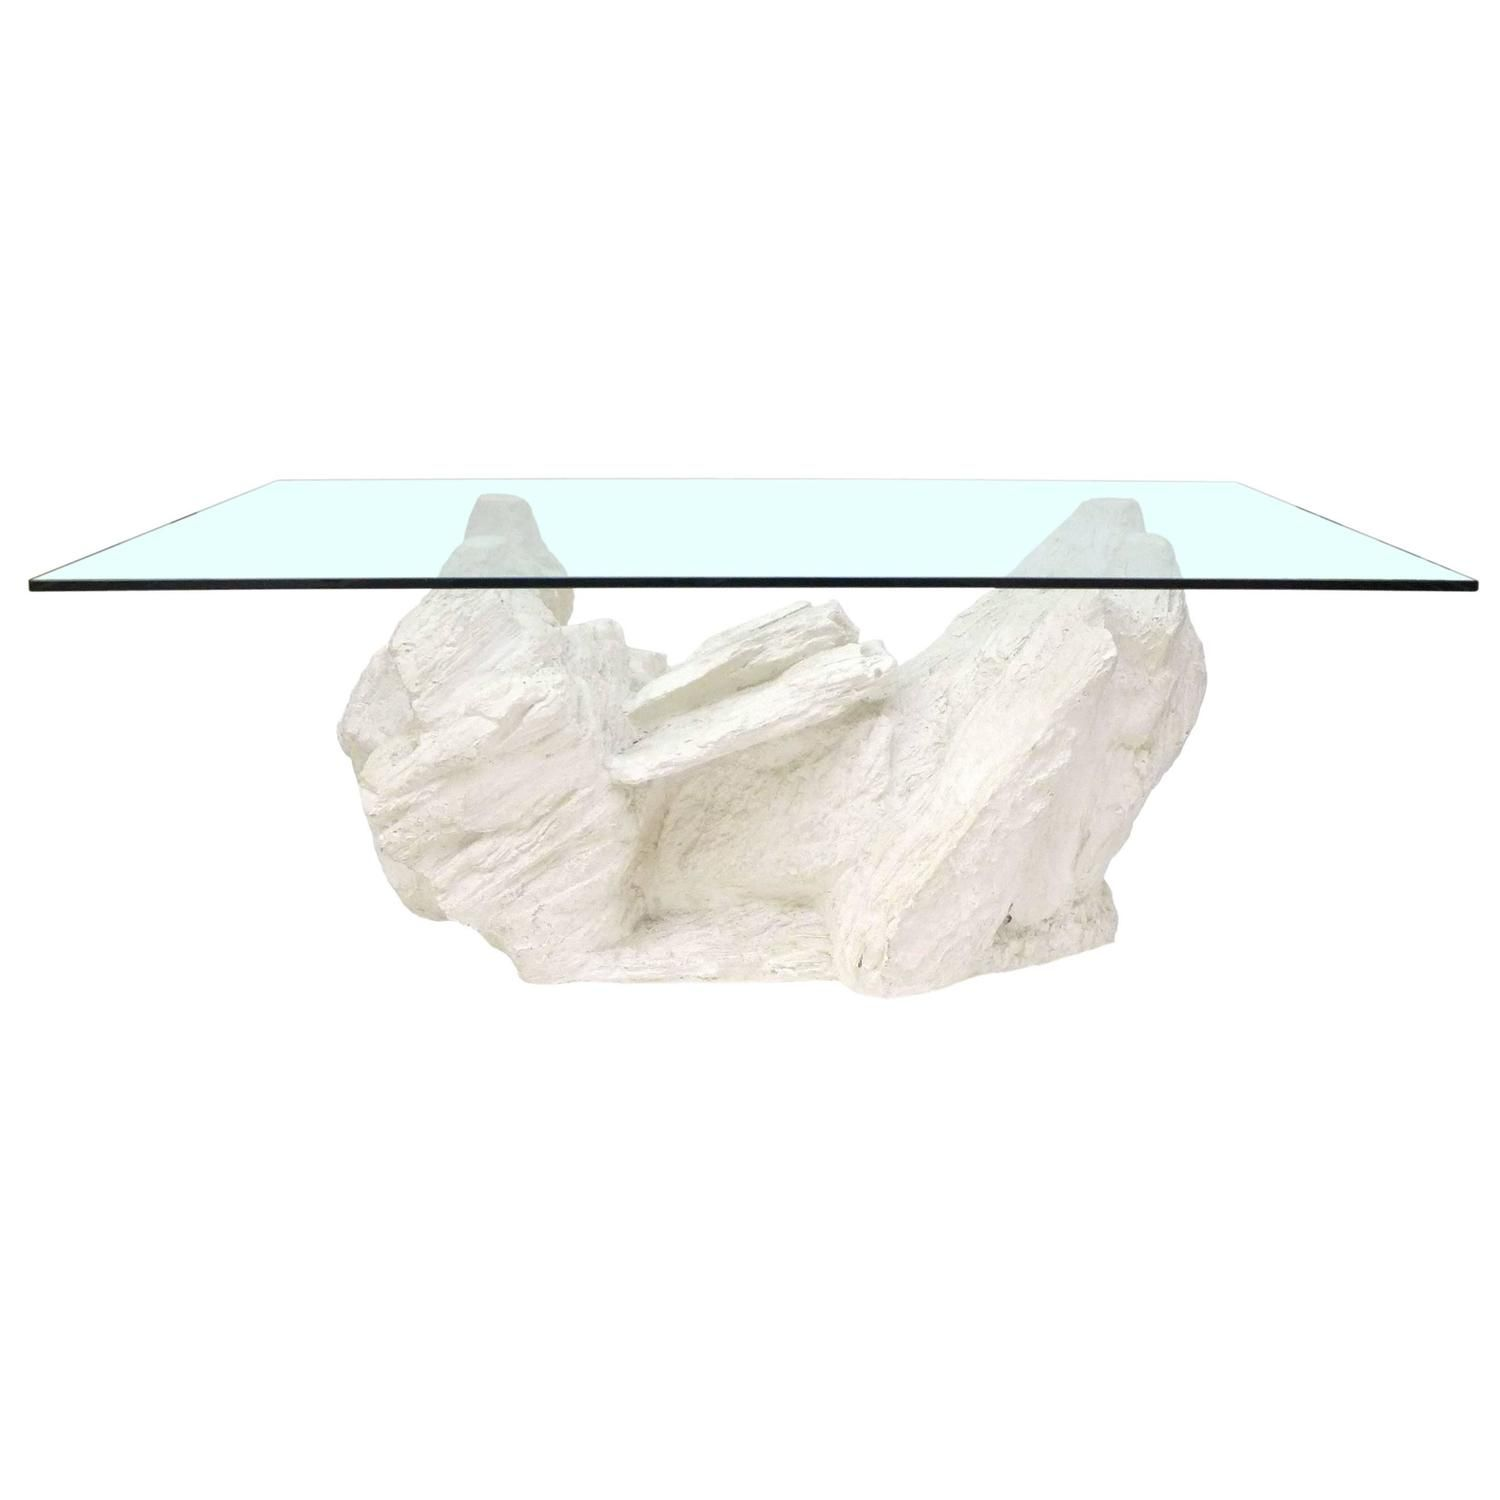 Cast Plaster Faux Rock Coffee Table by Sirmos For Sale at 1stdibs